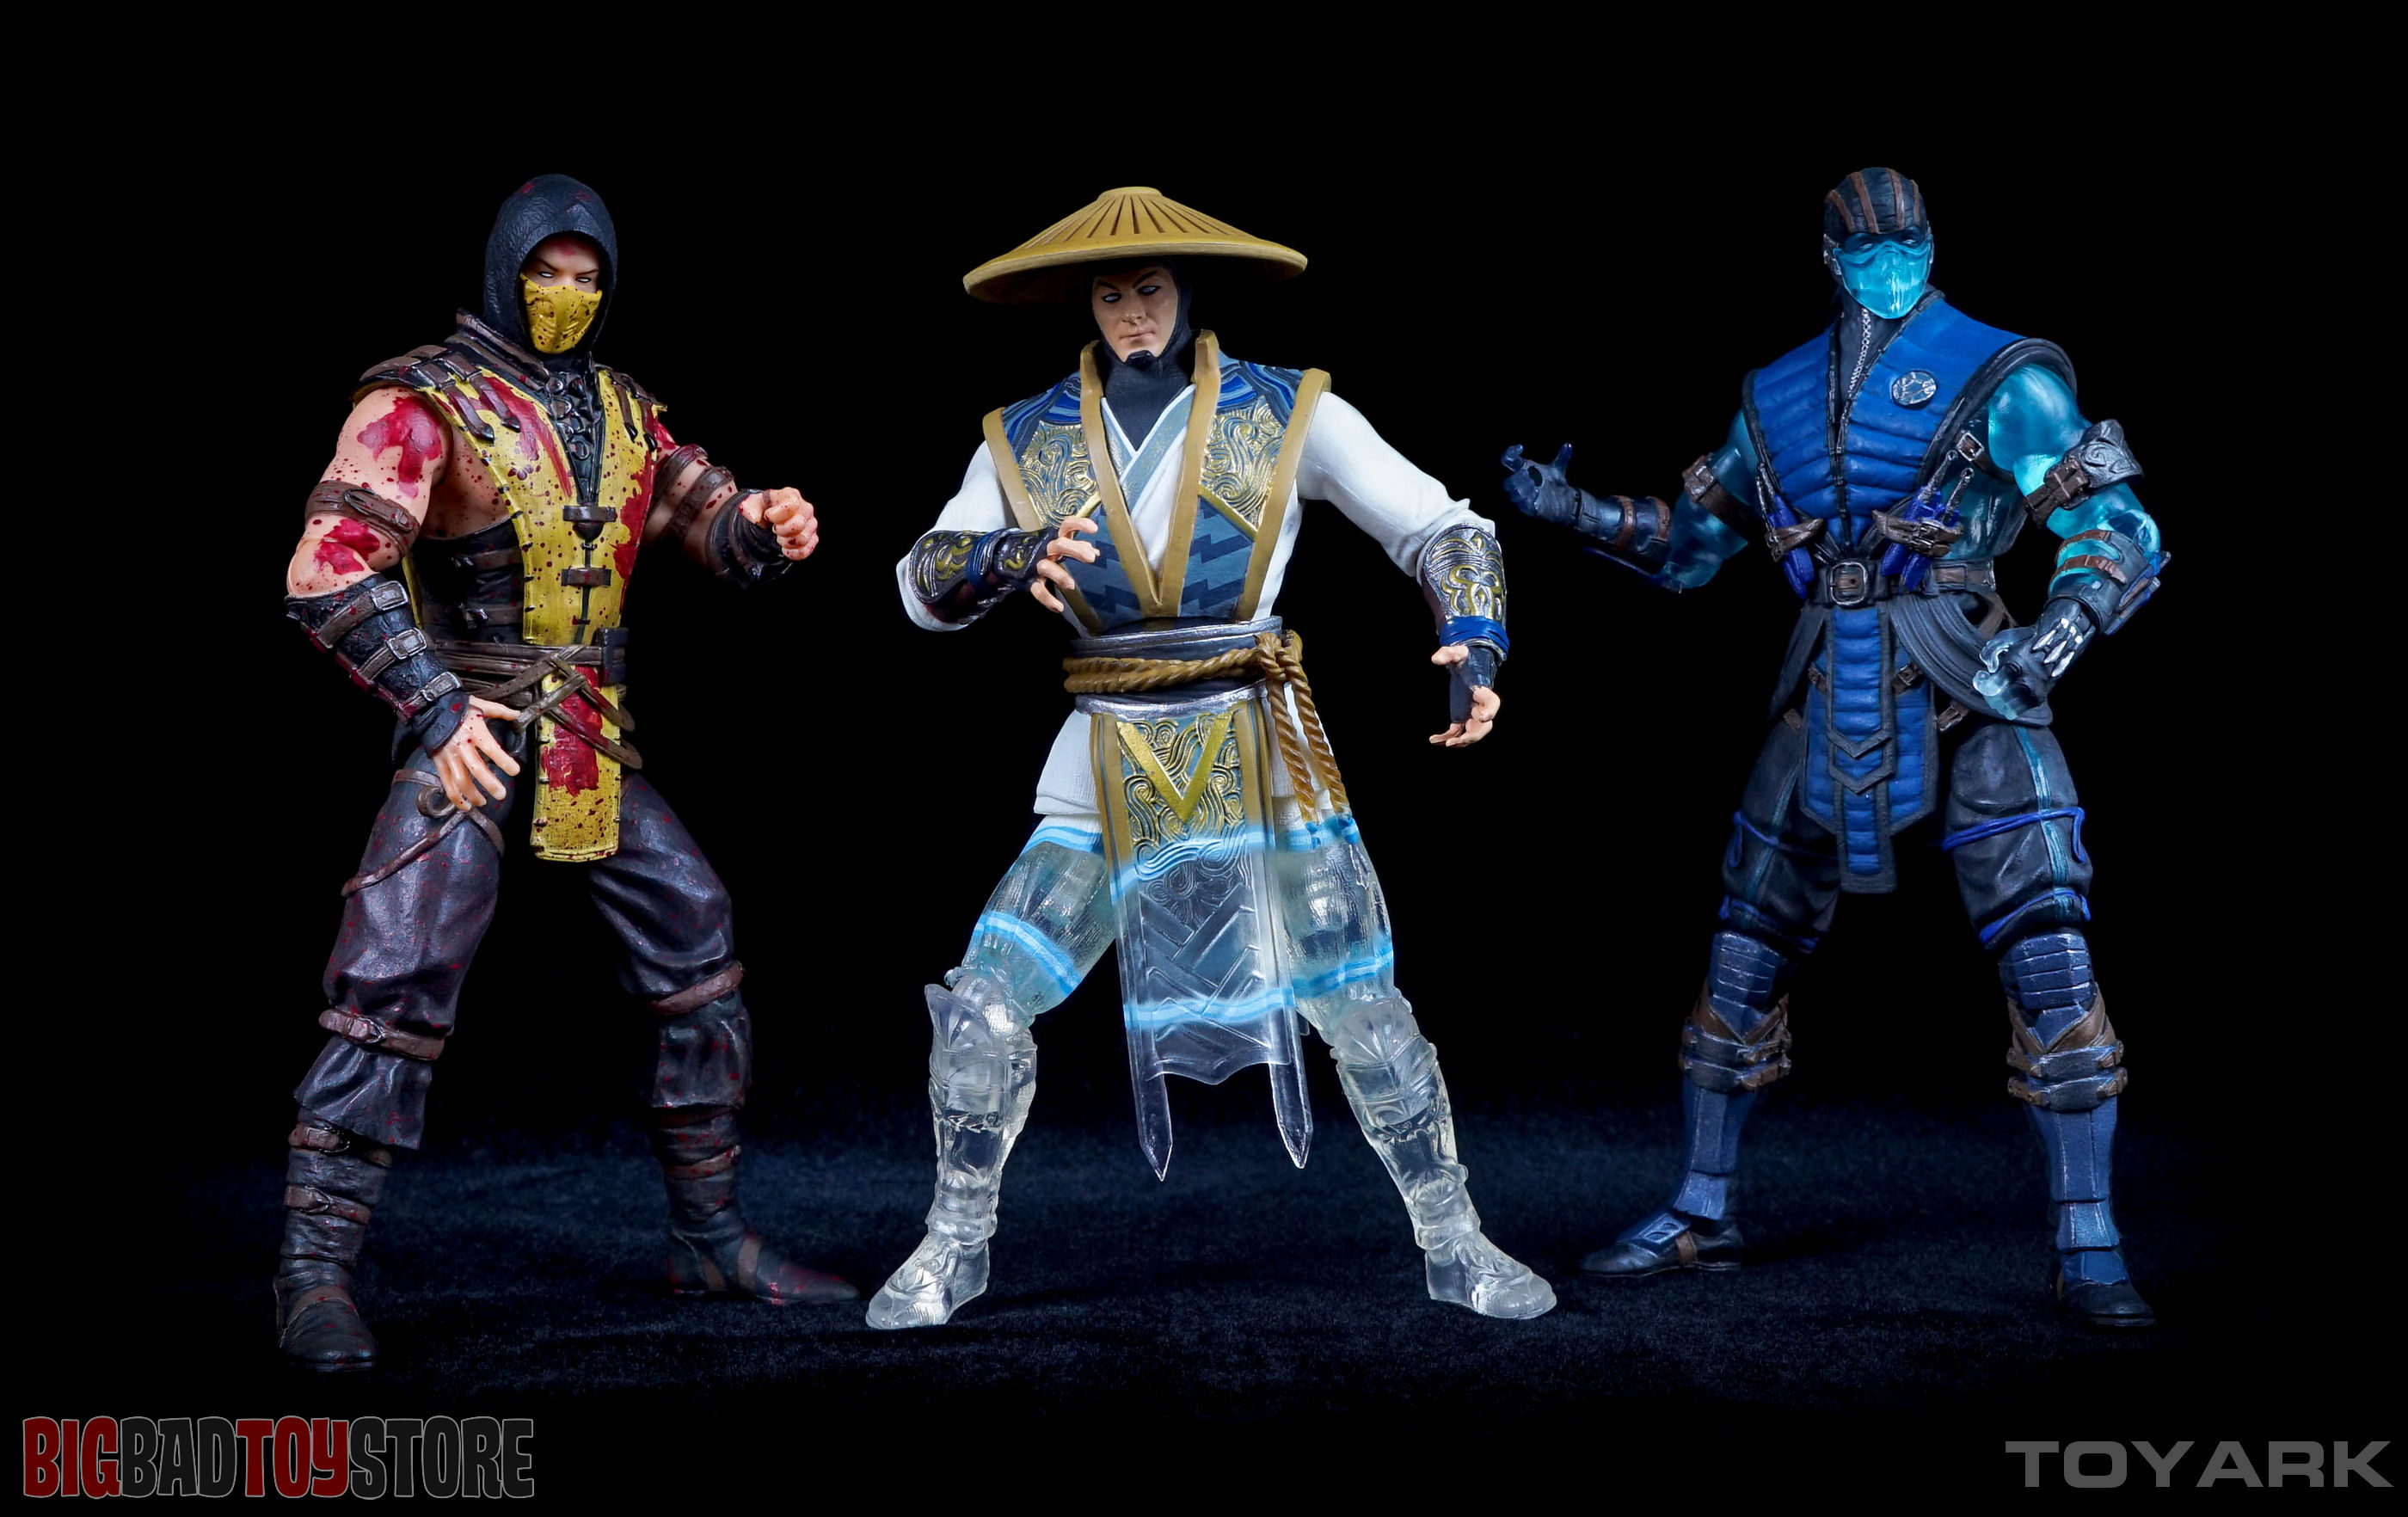 http://news.toyark.com/wp-content/uploads/sites/4/2015/10/Mezco-PX-Mortal-Kombat-X-077.jpg